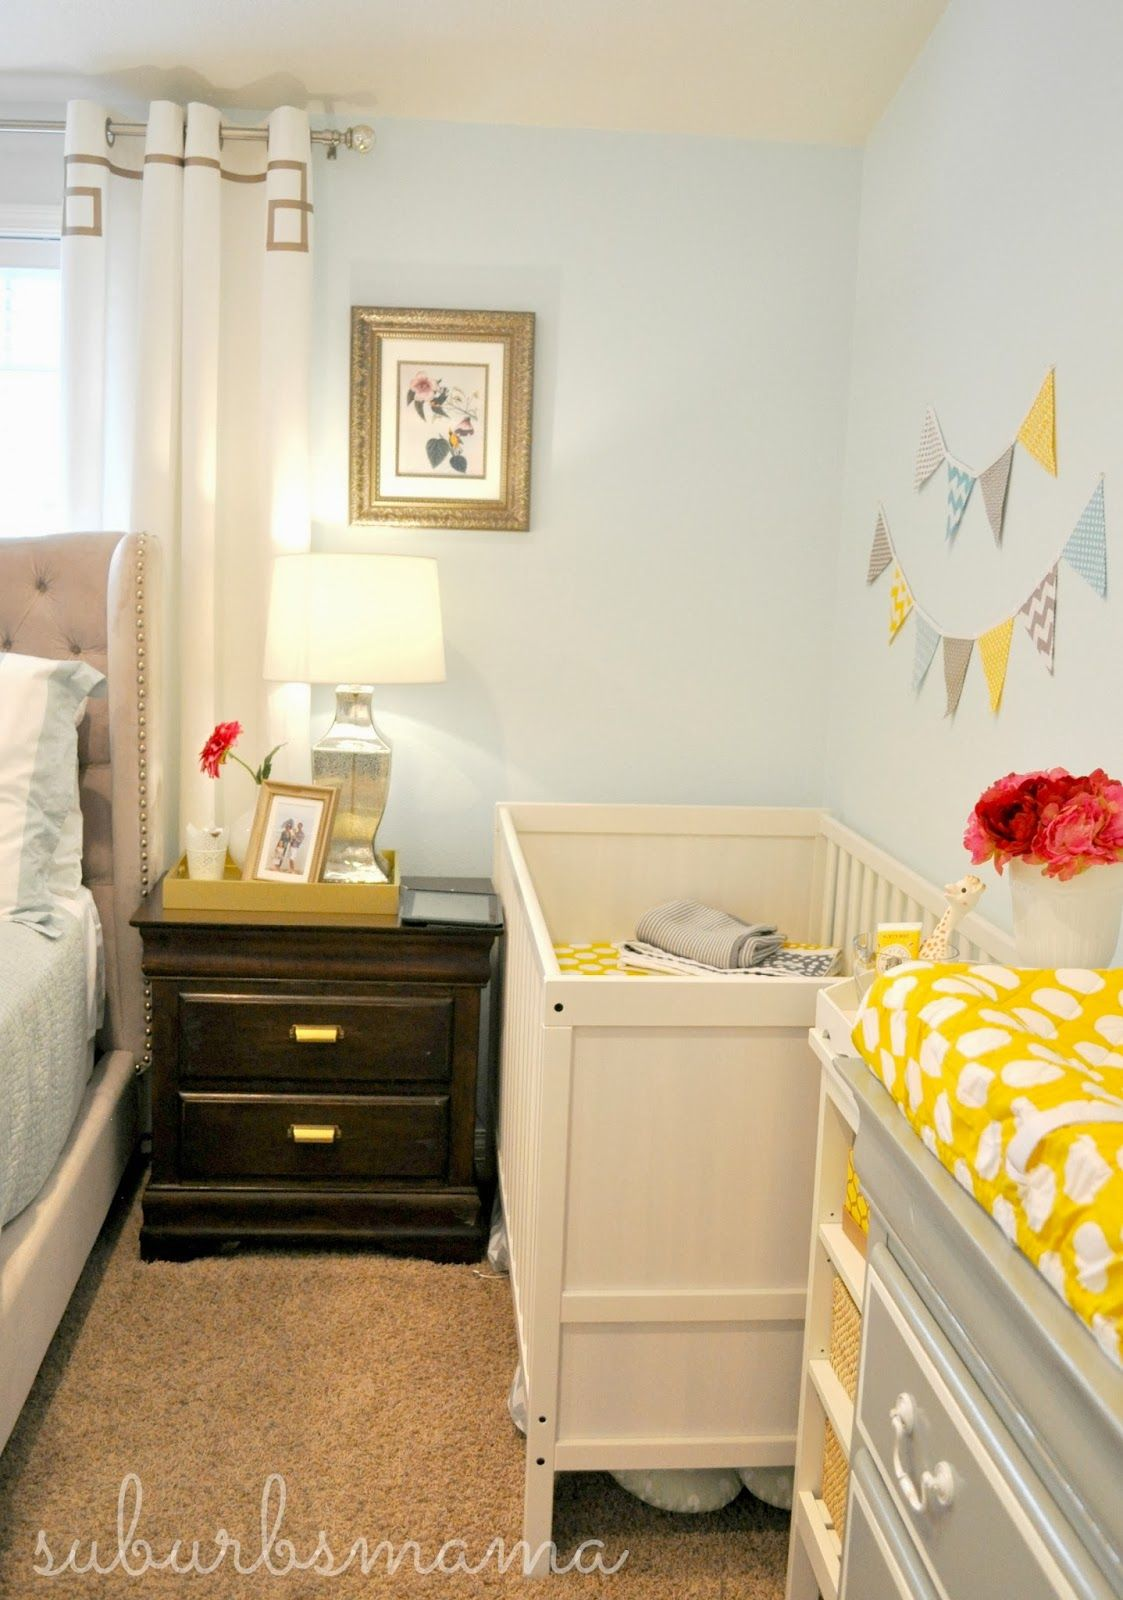 Suburbs Mama Nursery In Master Bedroom Kindergarten Science Pinterest Master Bedroom